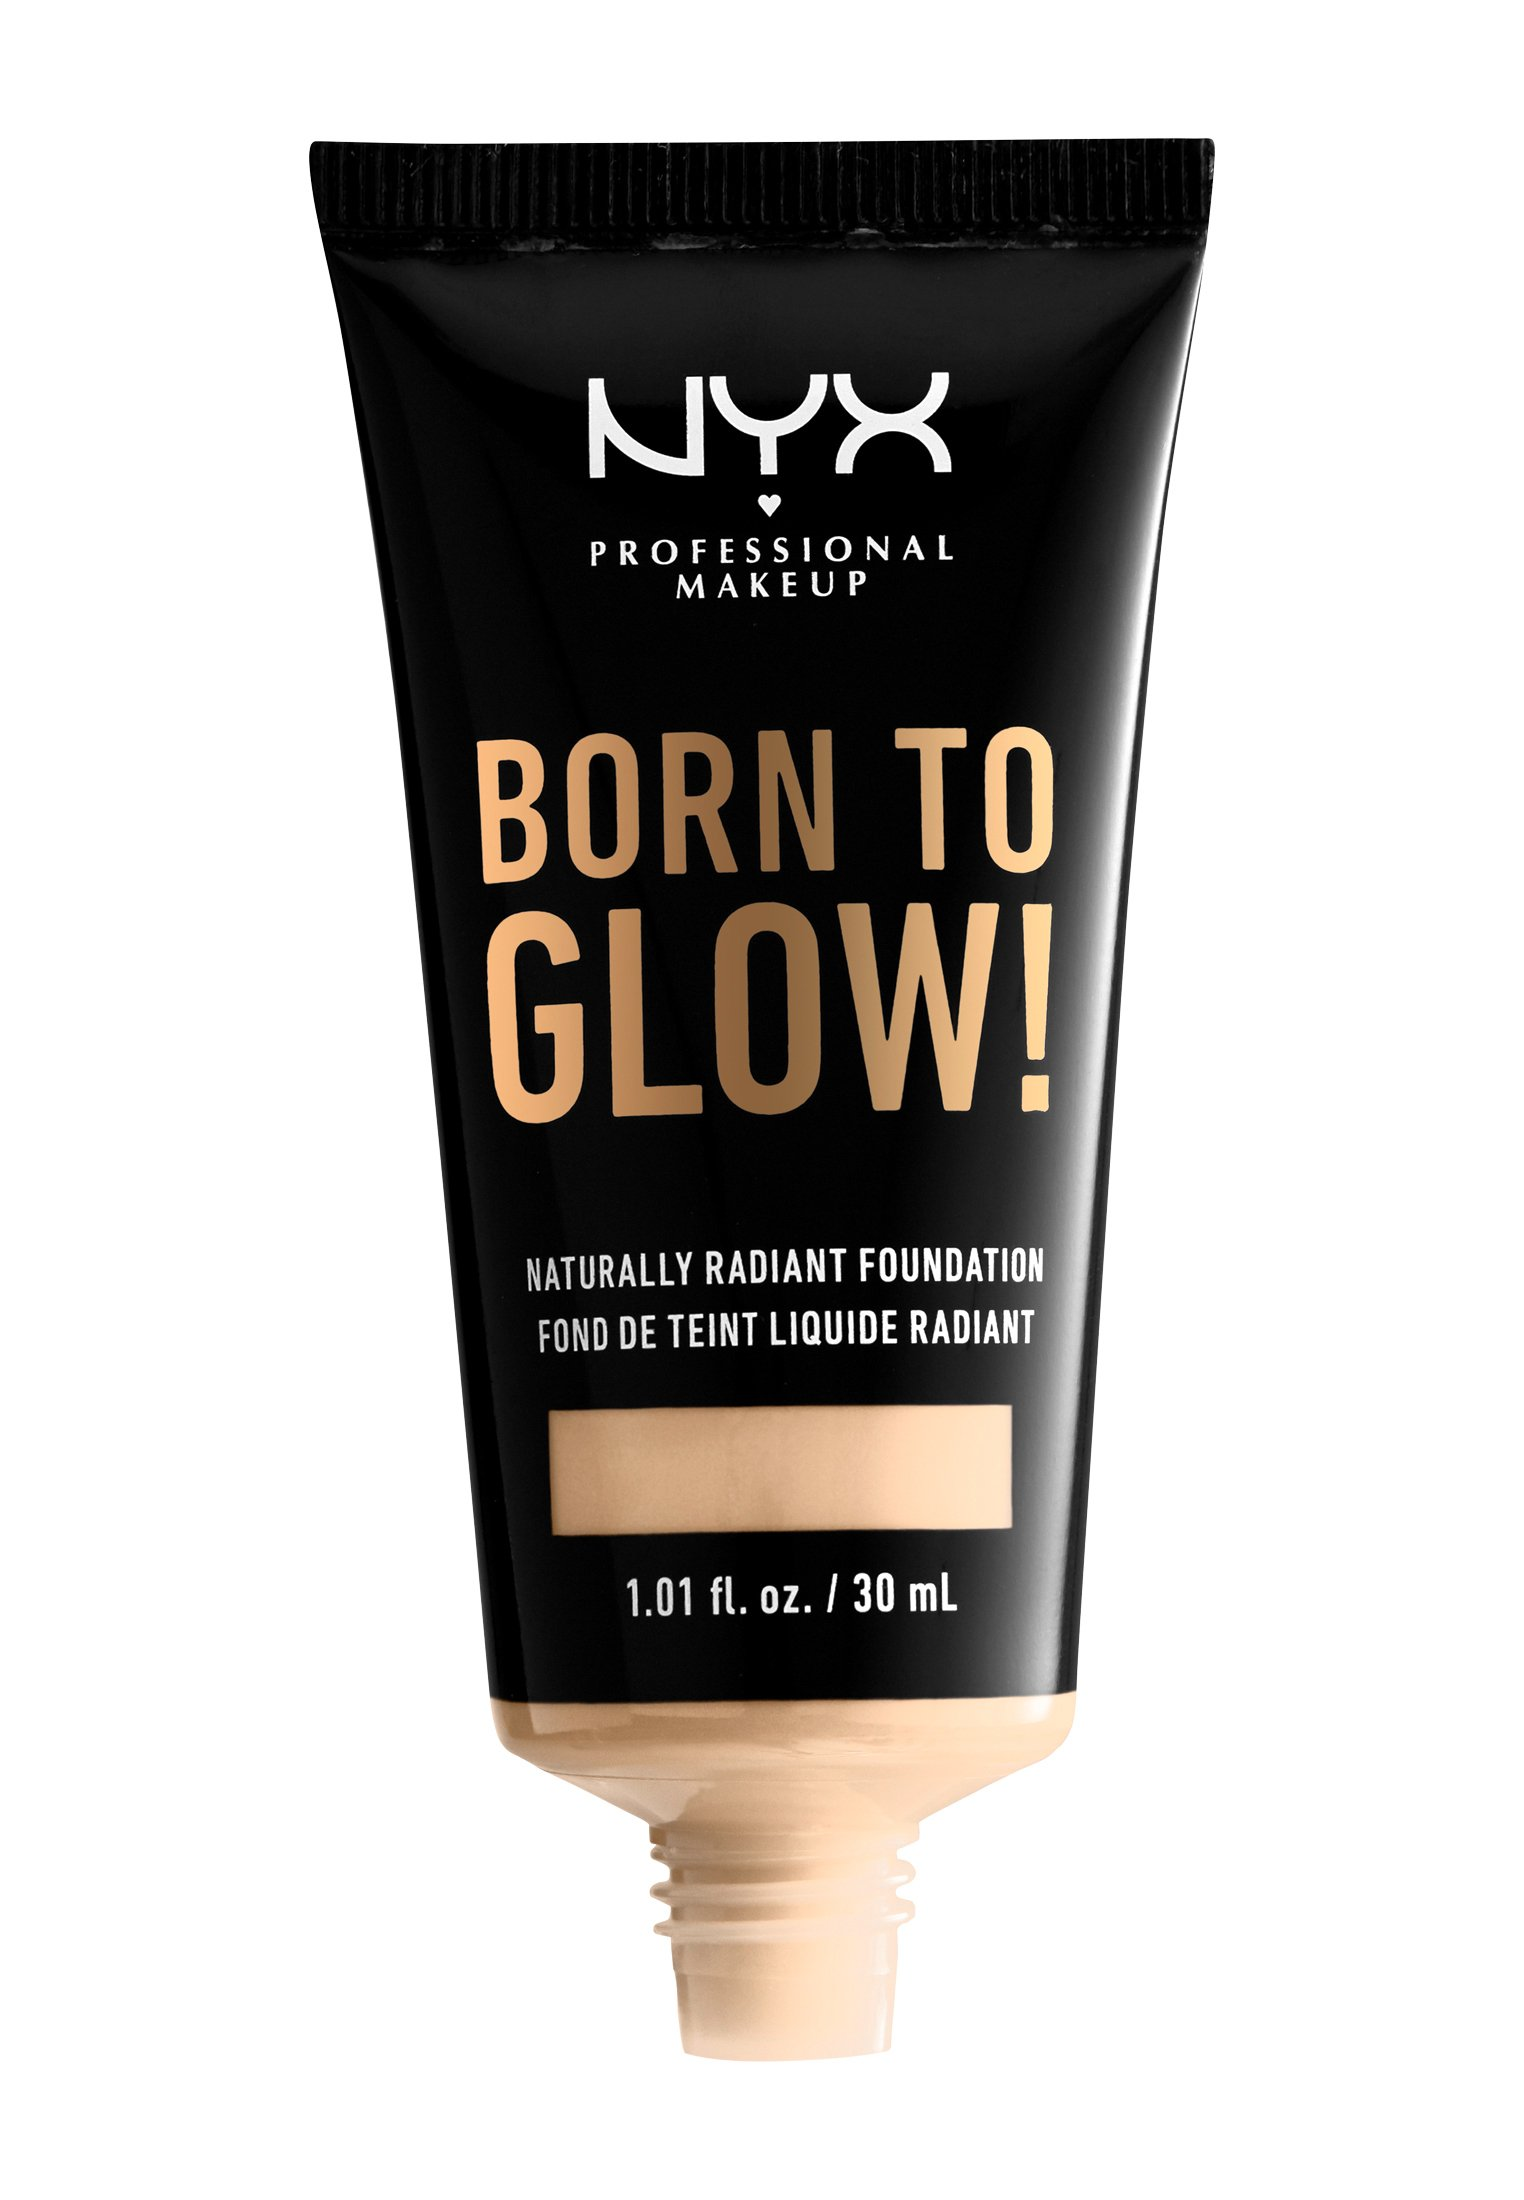 Nyx Professional Makeup BORN TO GLOW NATURALLY RADIANT FOUNDATION - Foundation - 01 pale